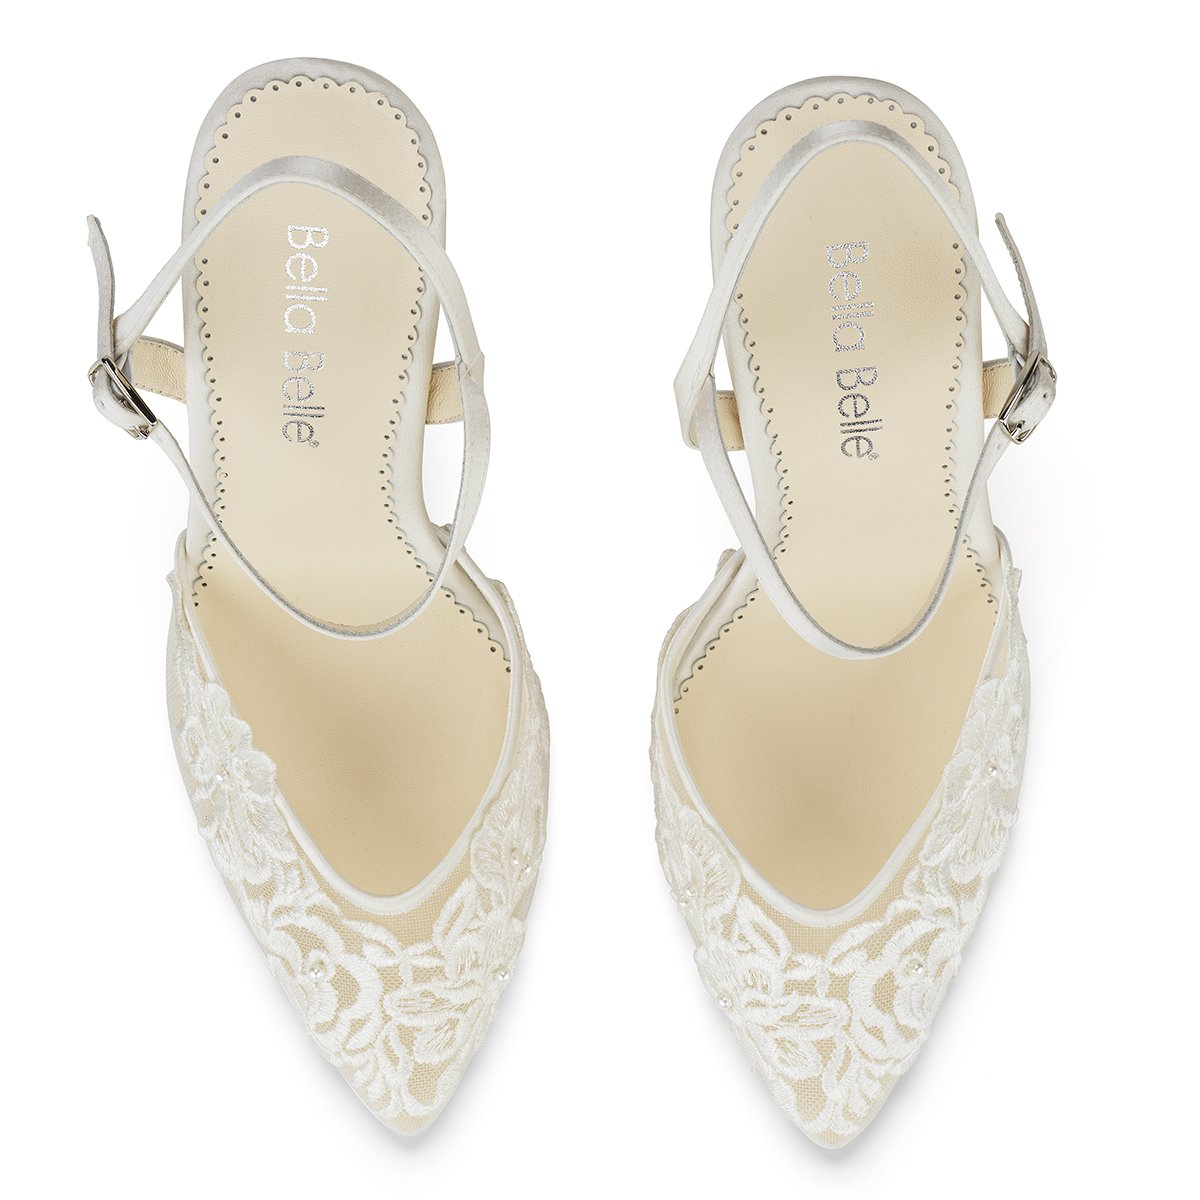 Maya - Ivory Pearl and Lace Heel